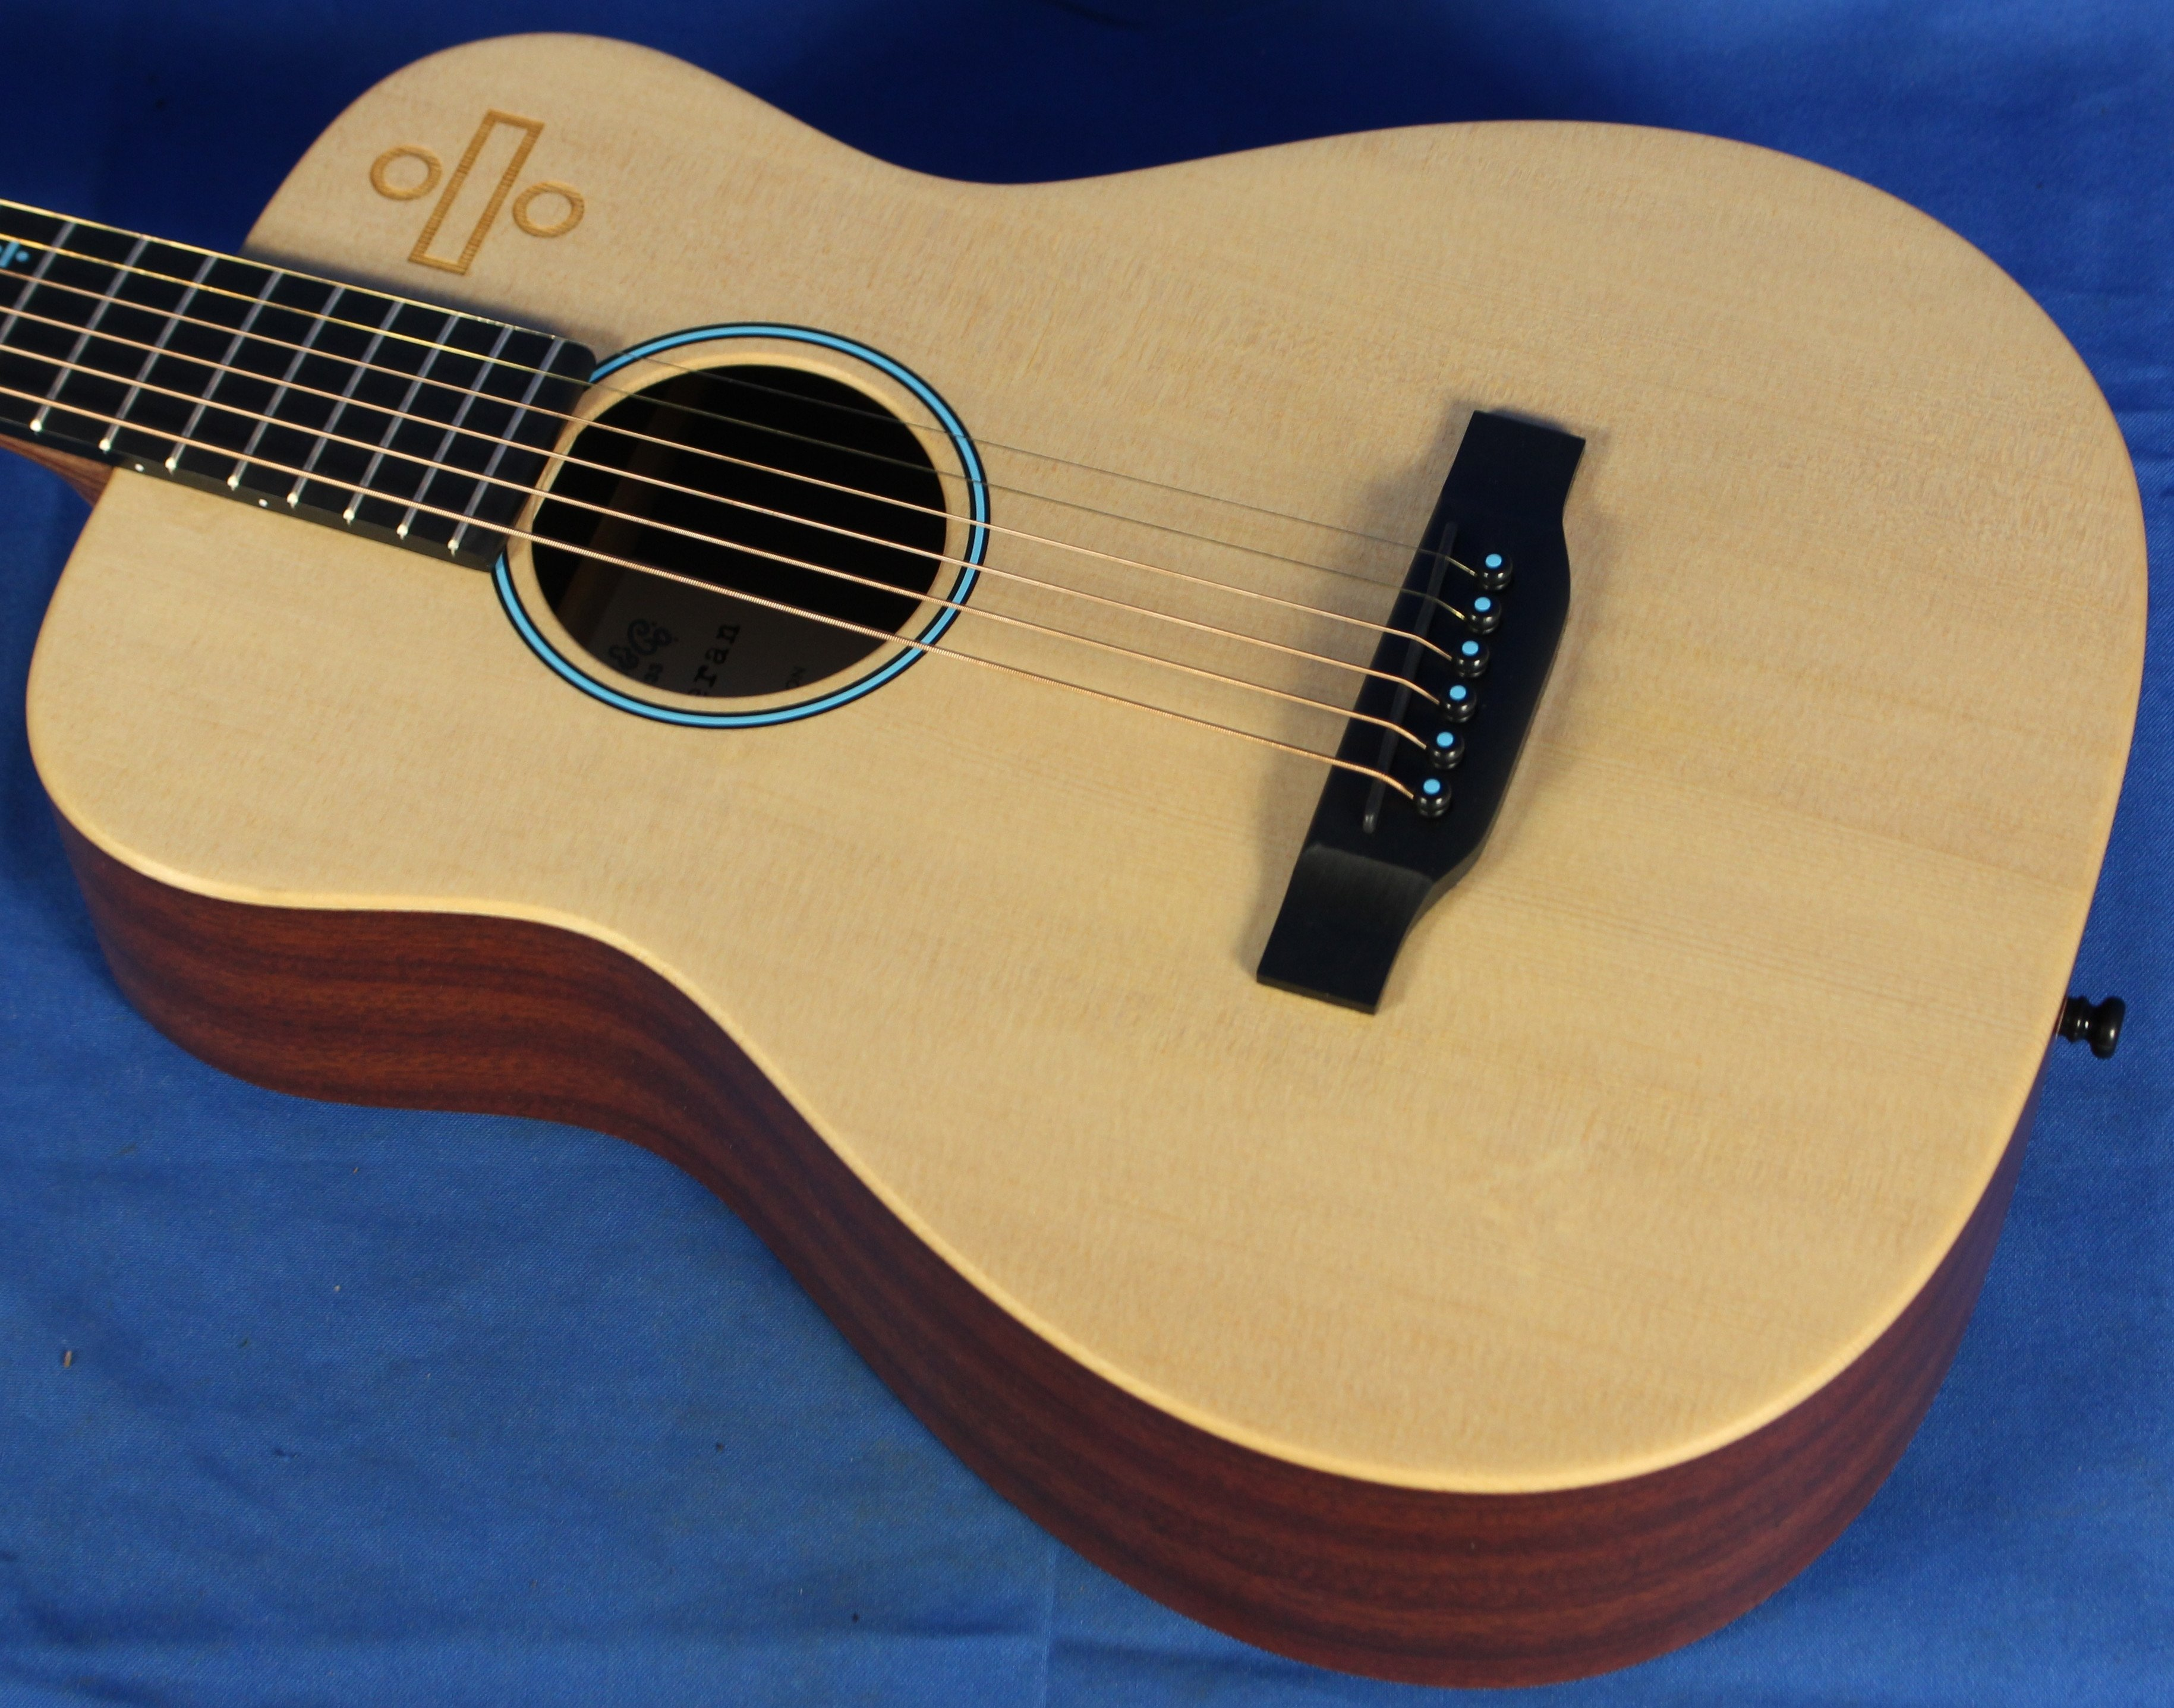 Welcome You Are Looking At A Great Piece This Is The Martin Ed Sheeran Divide Signature Edition Acoustic Electric Ed Sheeran Acoustic Electric Guitar Guitar